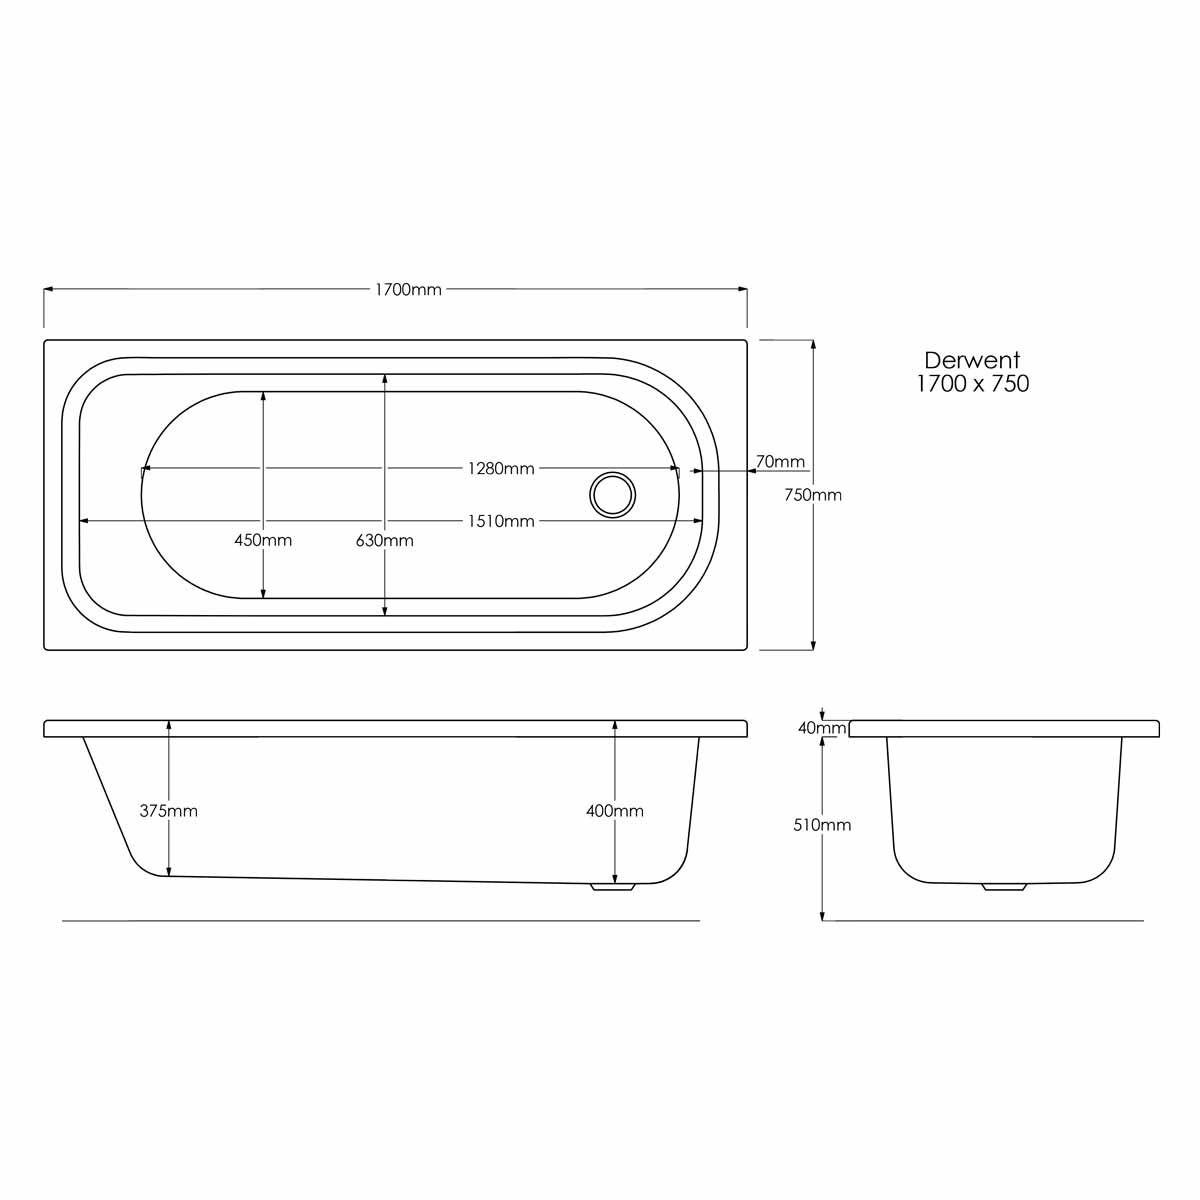 Trojan Derwent Reinforced Single Ended Bath 1700 x 750 with Grips Dimensions